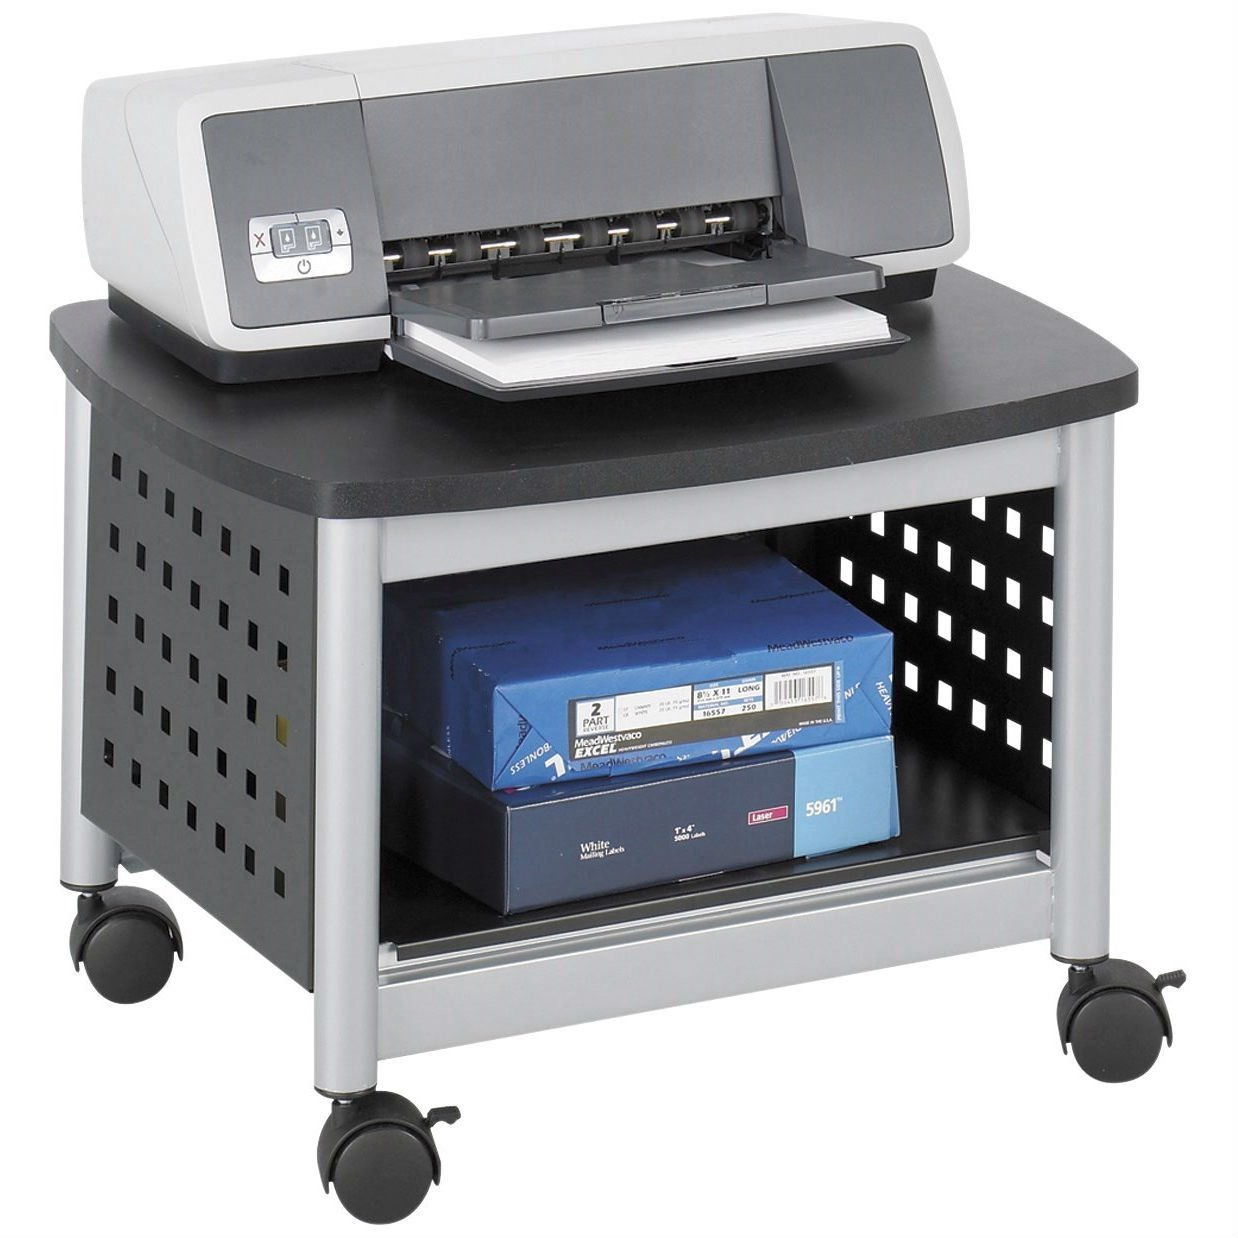 Superieur Under Desk Printer Stand Mobile Office Cart In Black And Silver